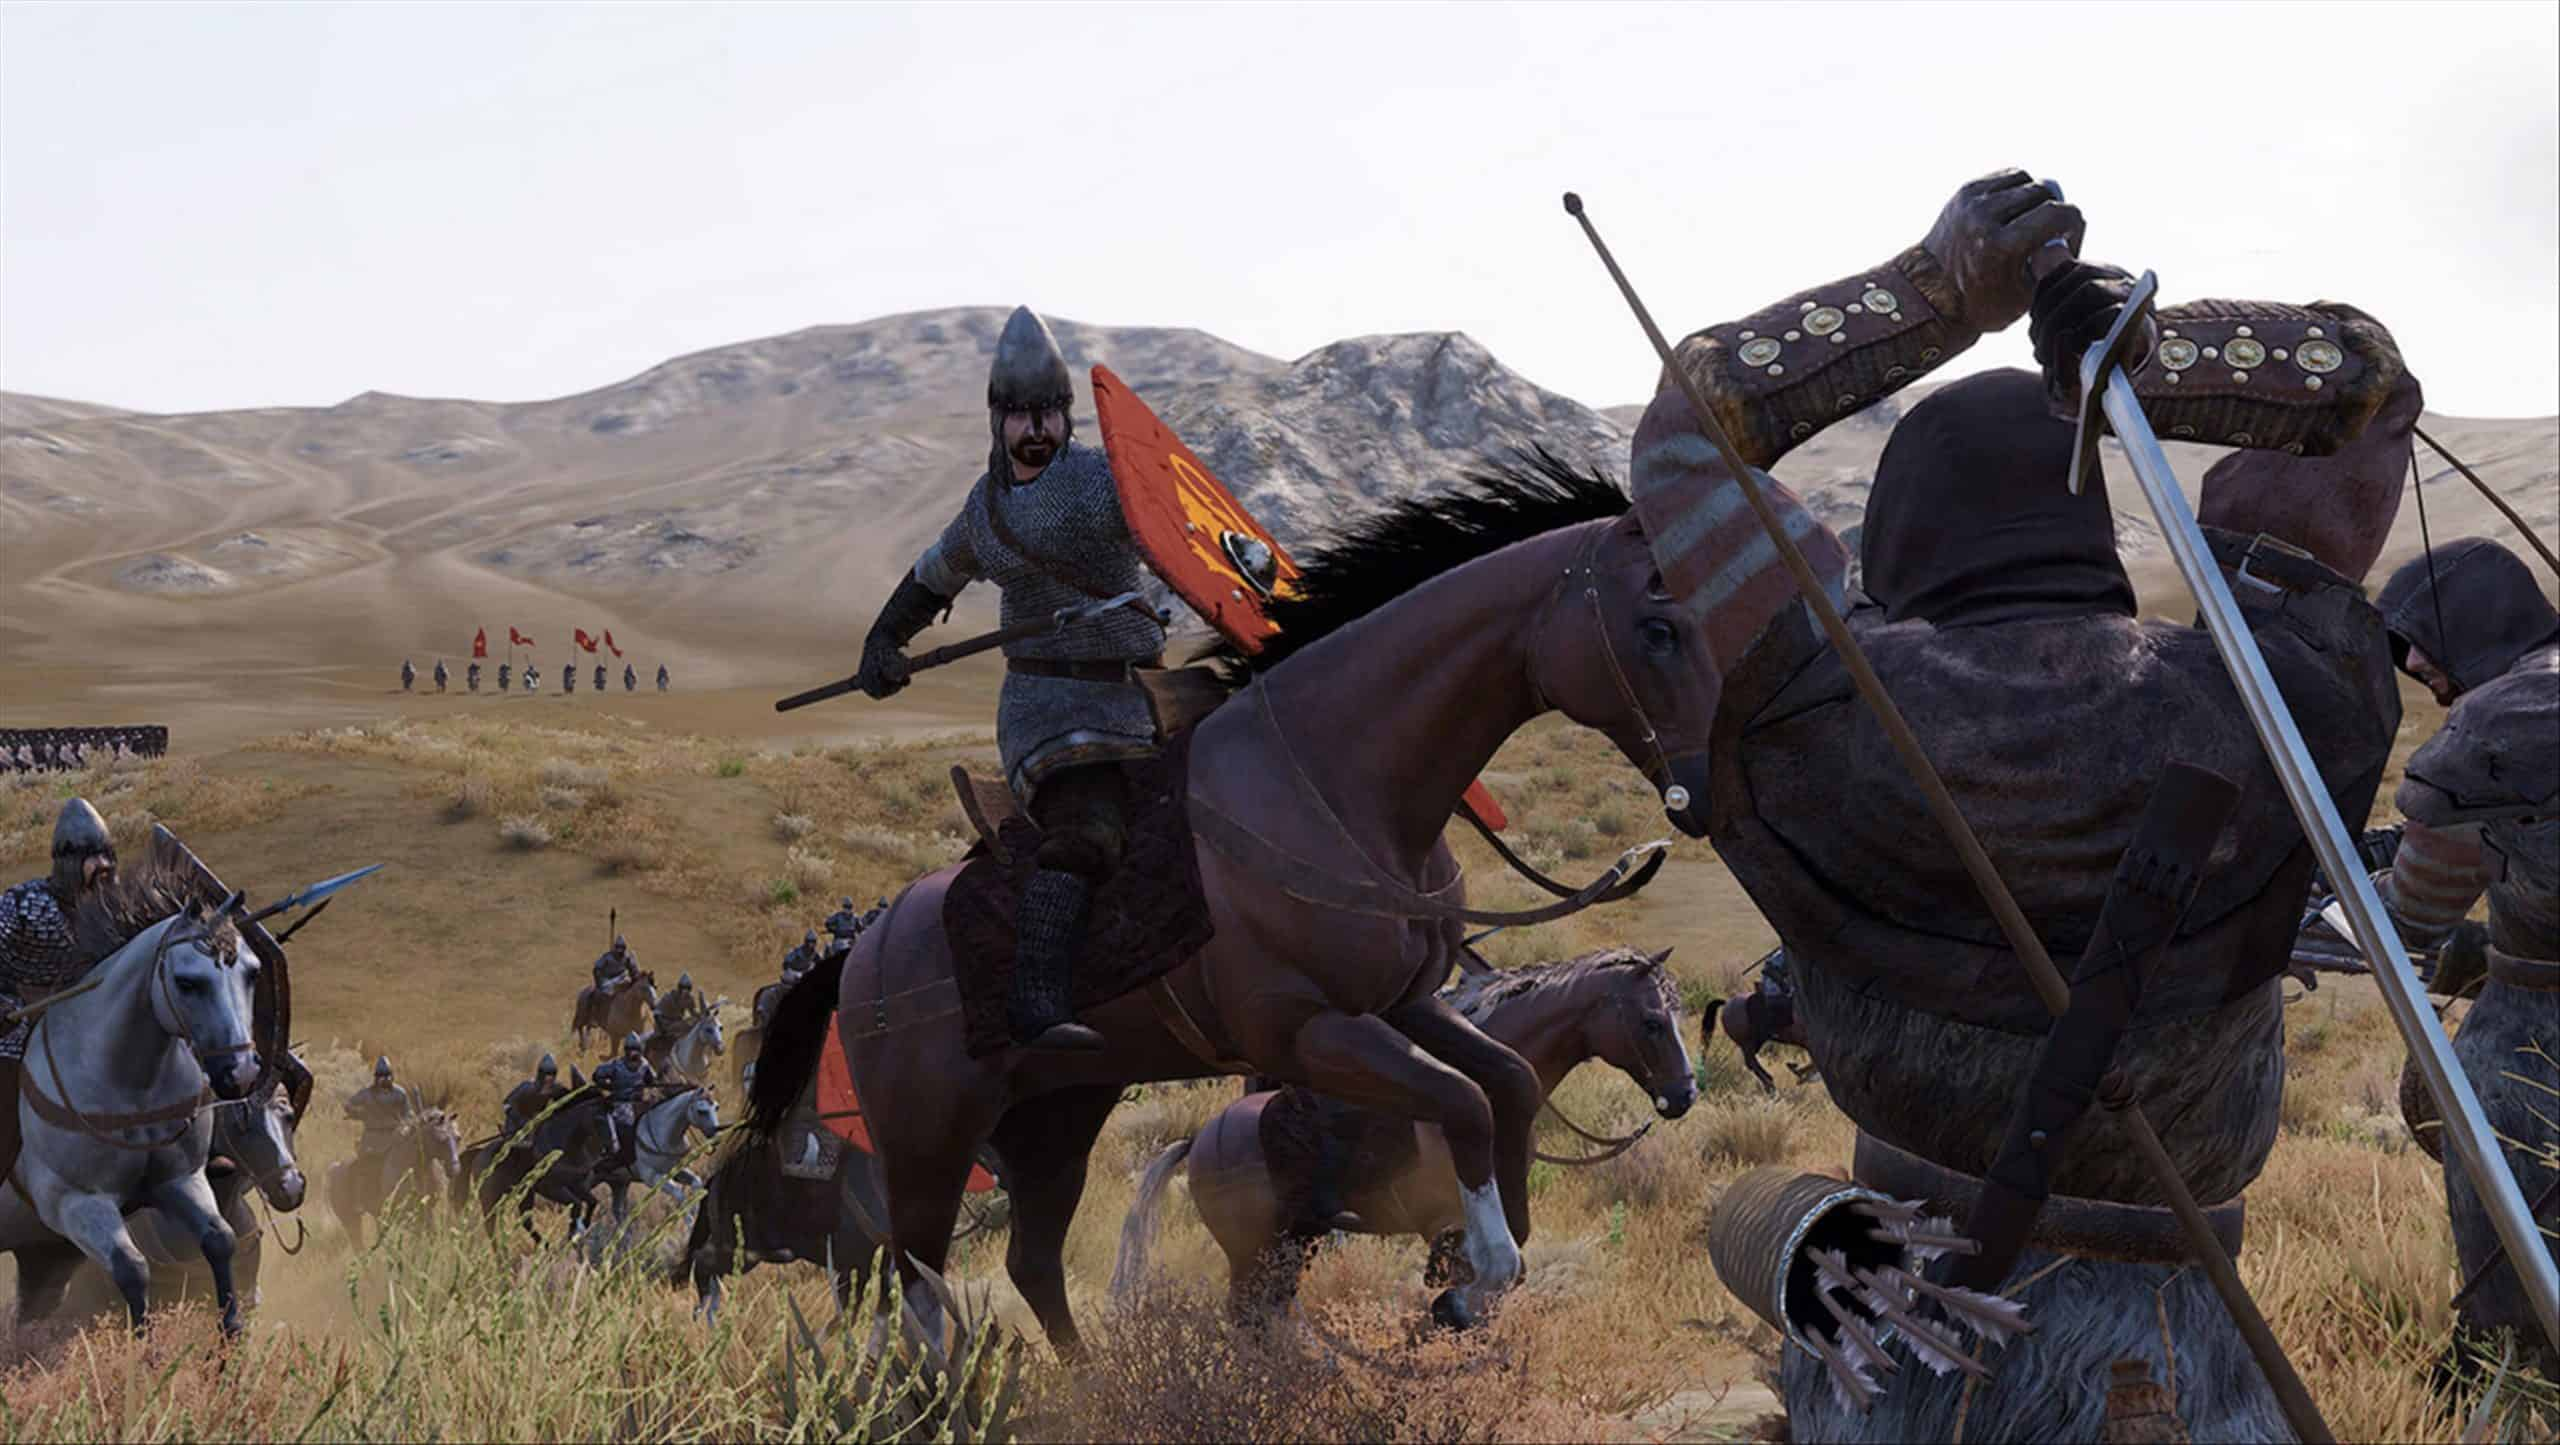 Mount & Blade II: Bannerlord Early Access Impressions